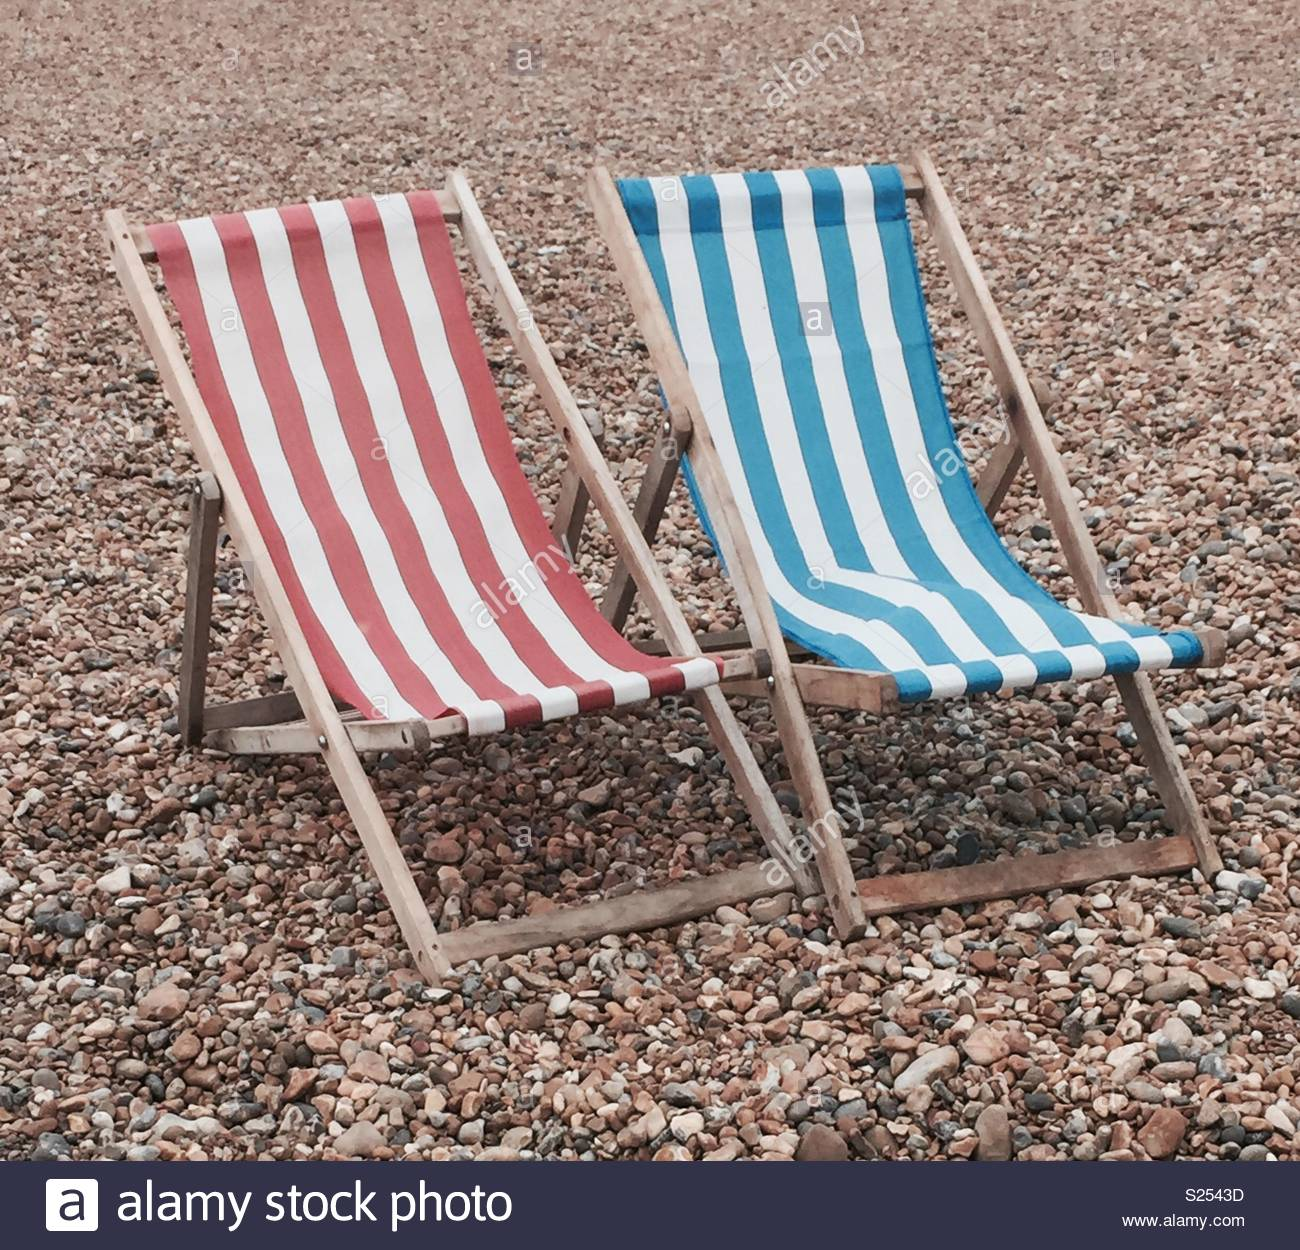 Brighton Deck Chairs - Stock Image